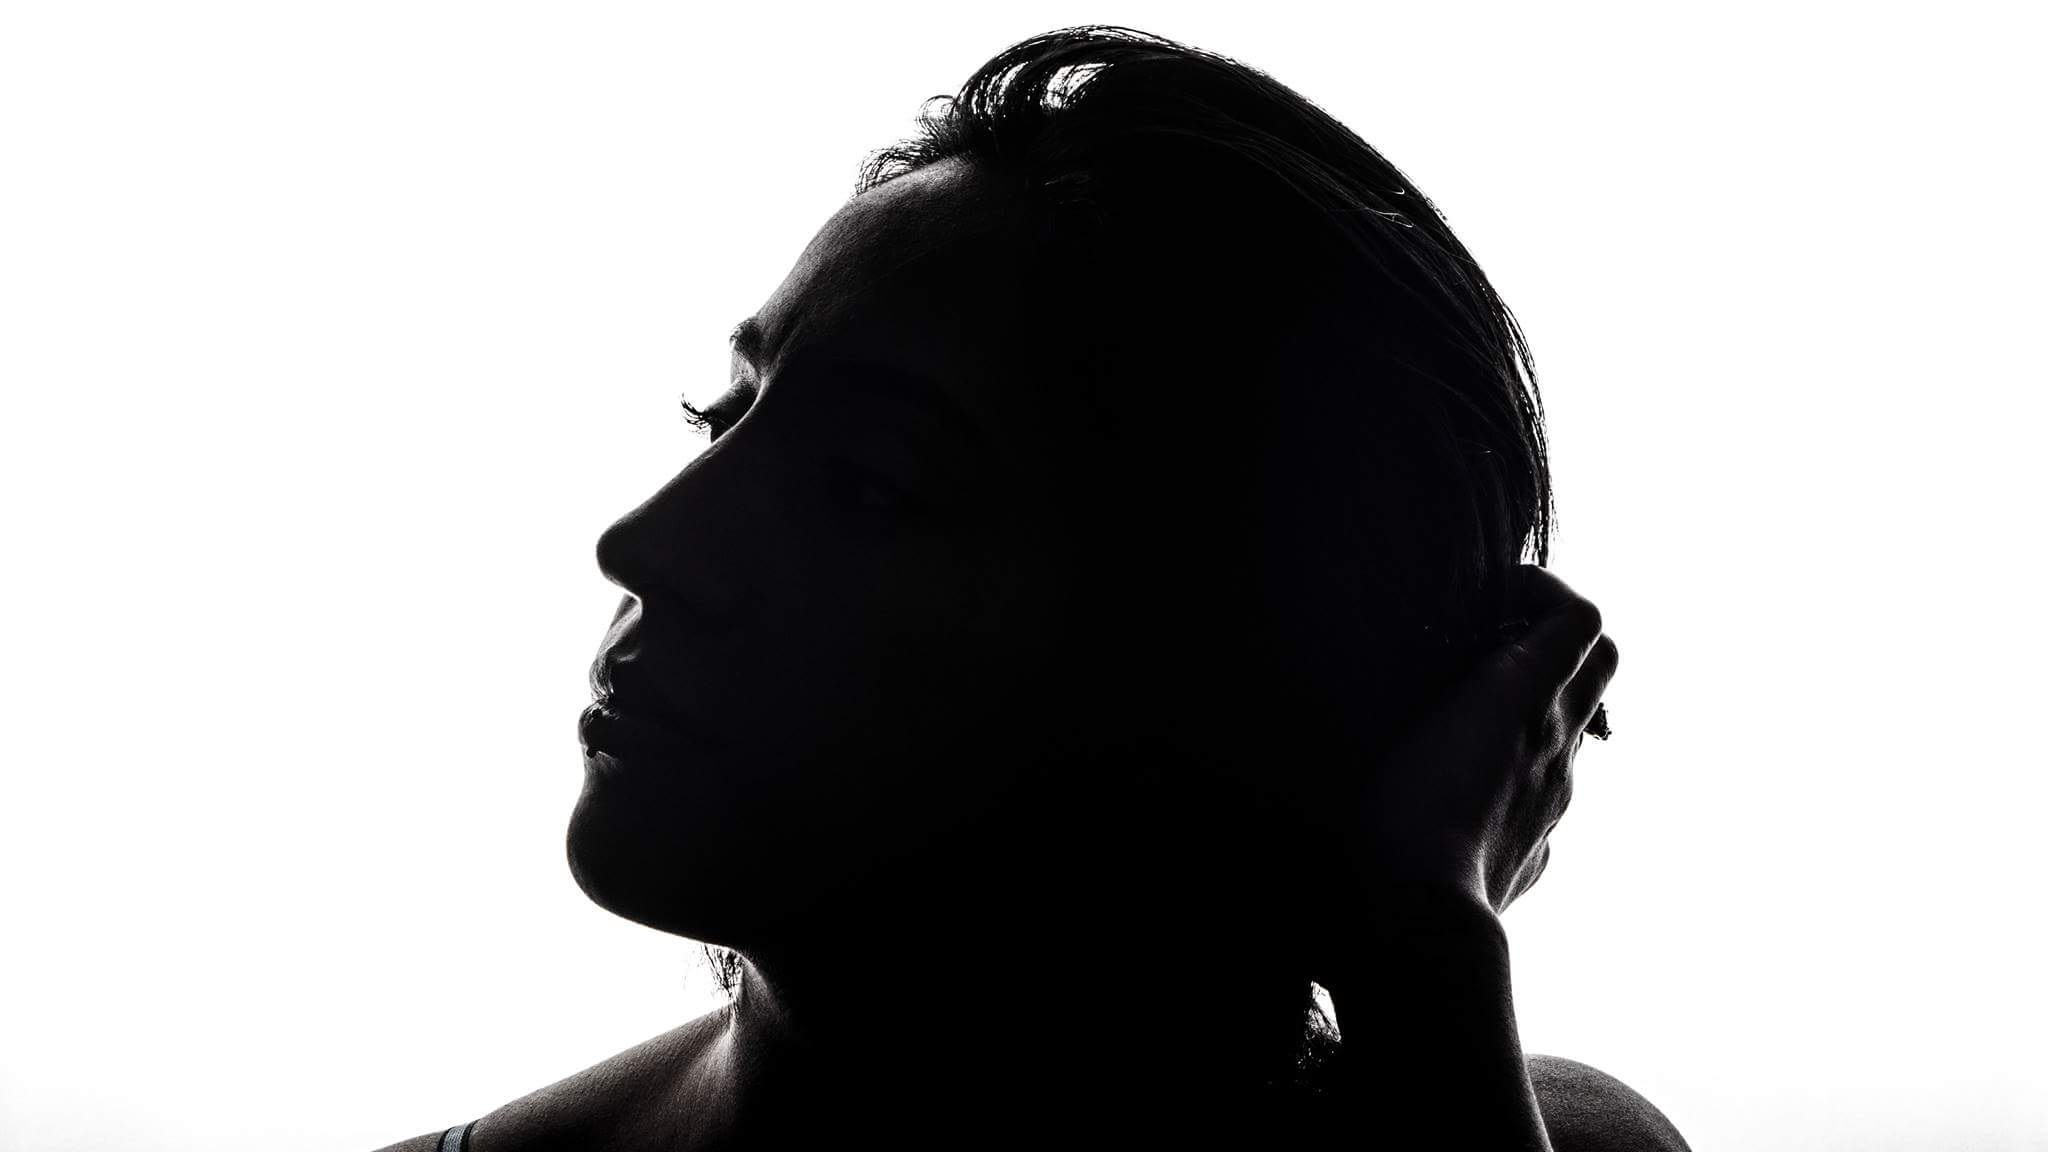 2048x1152 Free Images Silhouette, Black And White, Profile, Portrait